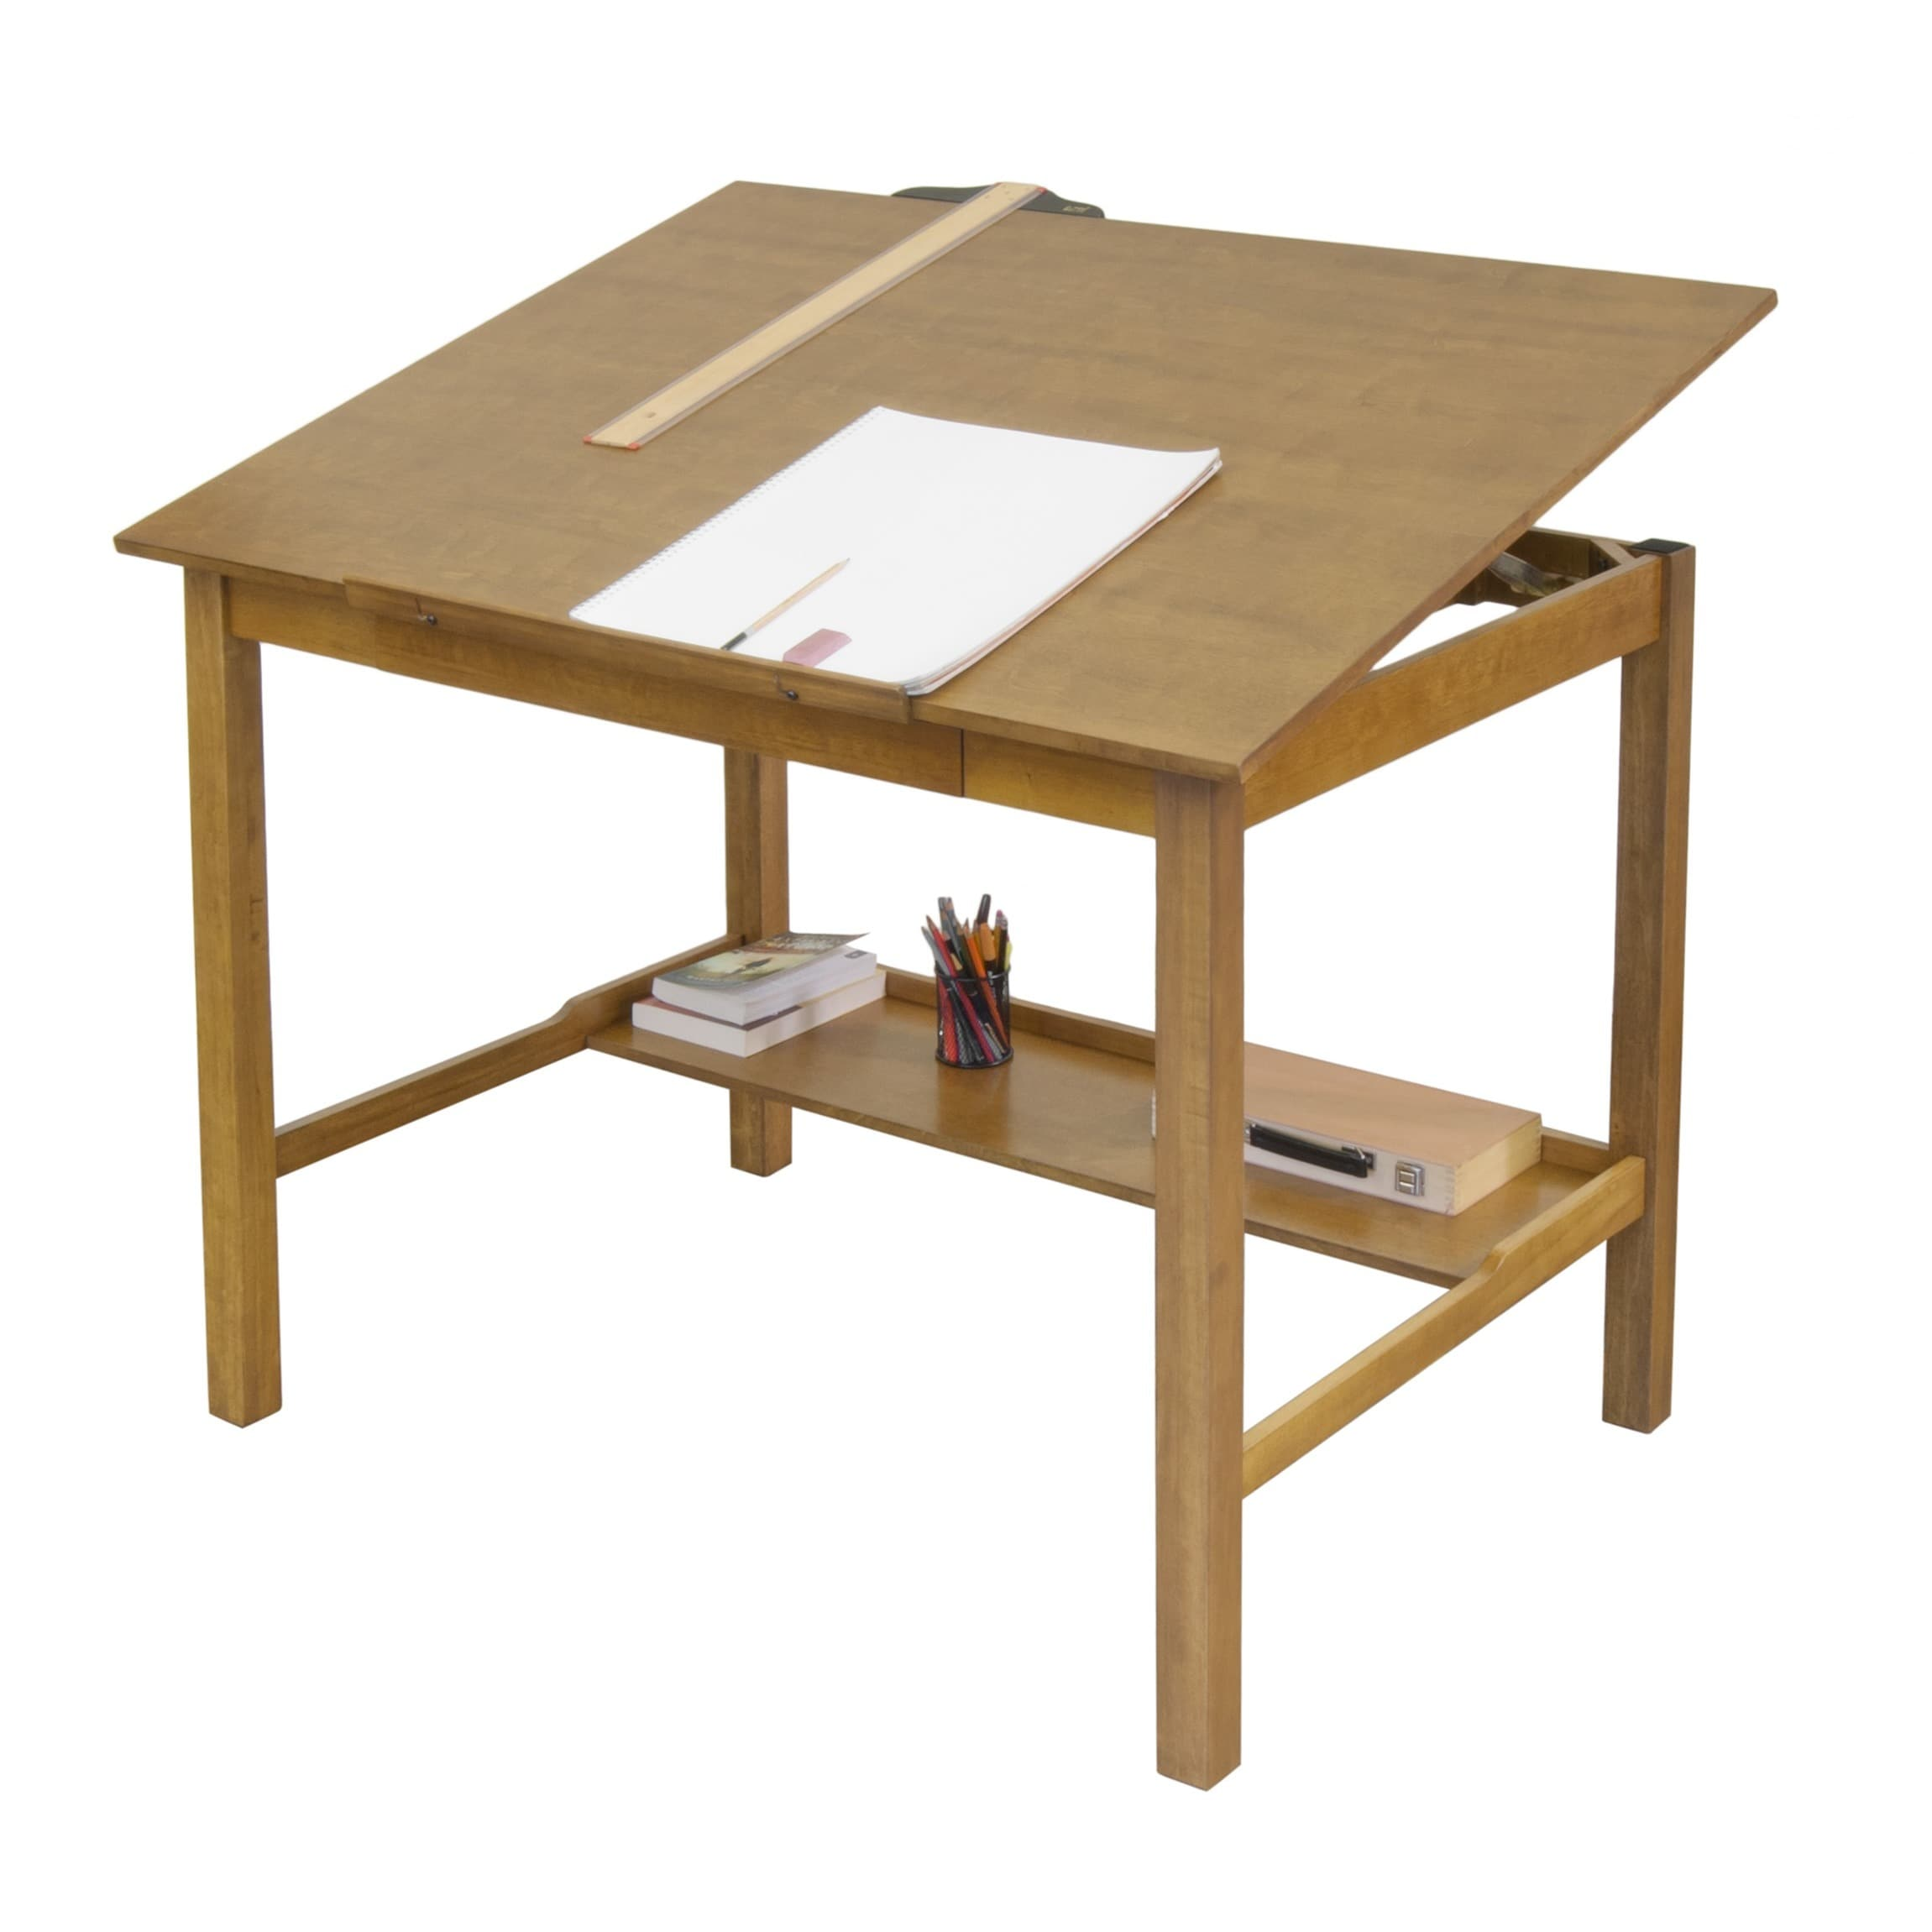 Shop Studio Designs Americana II 48 Inch Wide Light Oak Wood Drafting And  Hobby Craft Table   Free Shipping Today   Overstock.com   8369682